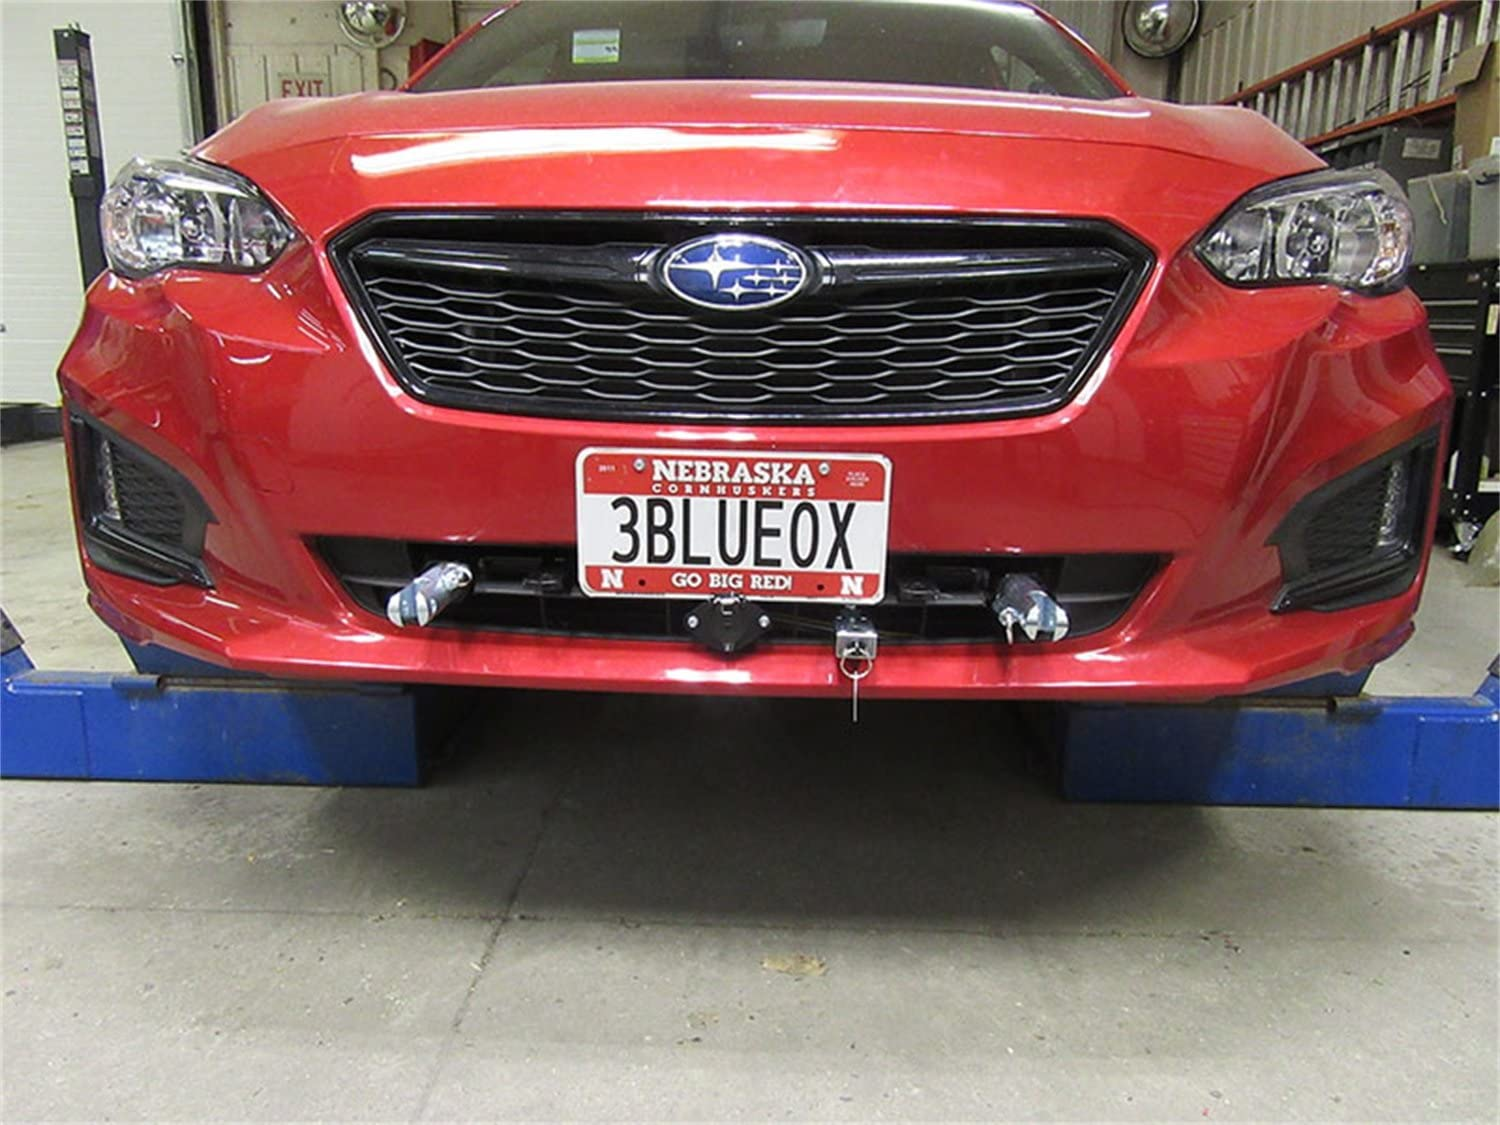 Tow Bar Base Plate Removable Attachment Tabs Install Time 3 hrs Blue Ox BX2265 Tow Bar Base Plate Incl